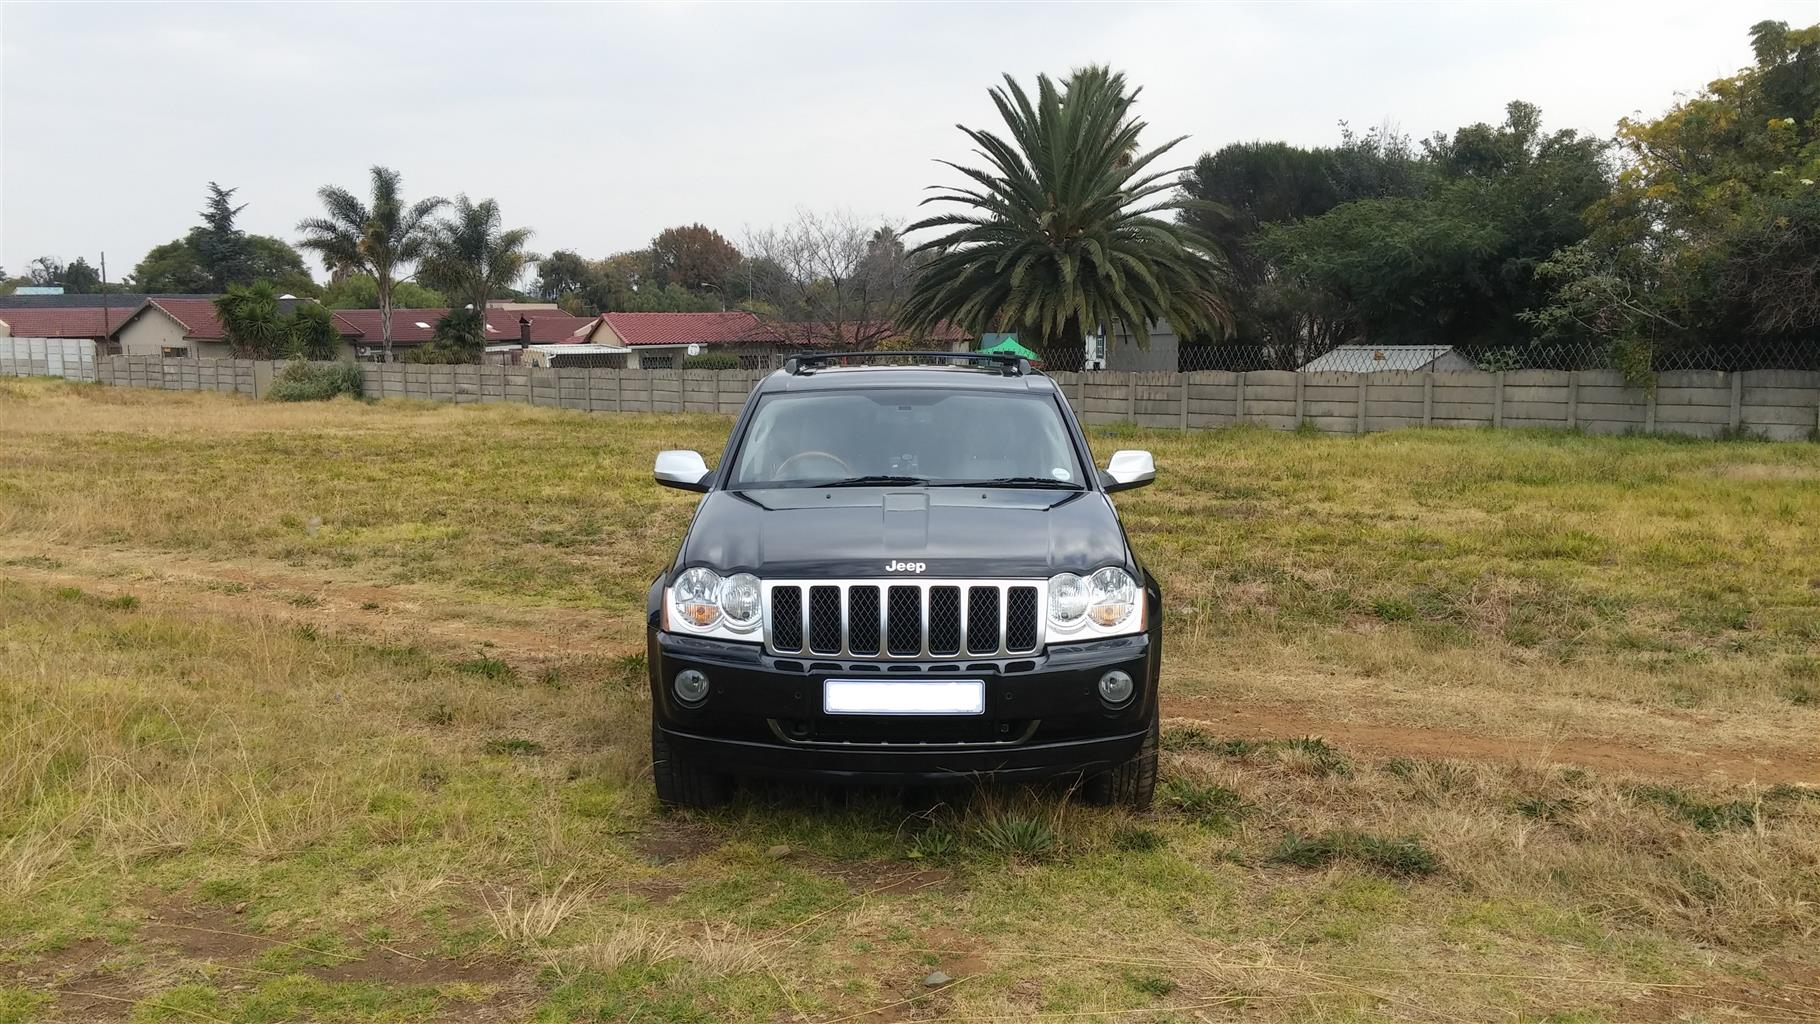 2006 Jeep Grand Cherokee 5 7l Overland Junk Mail